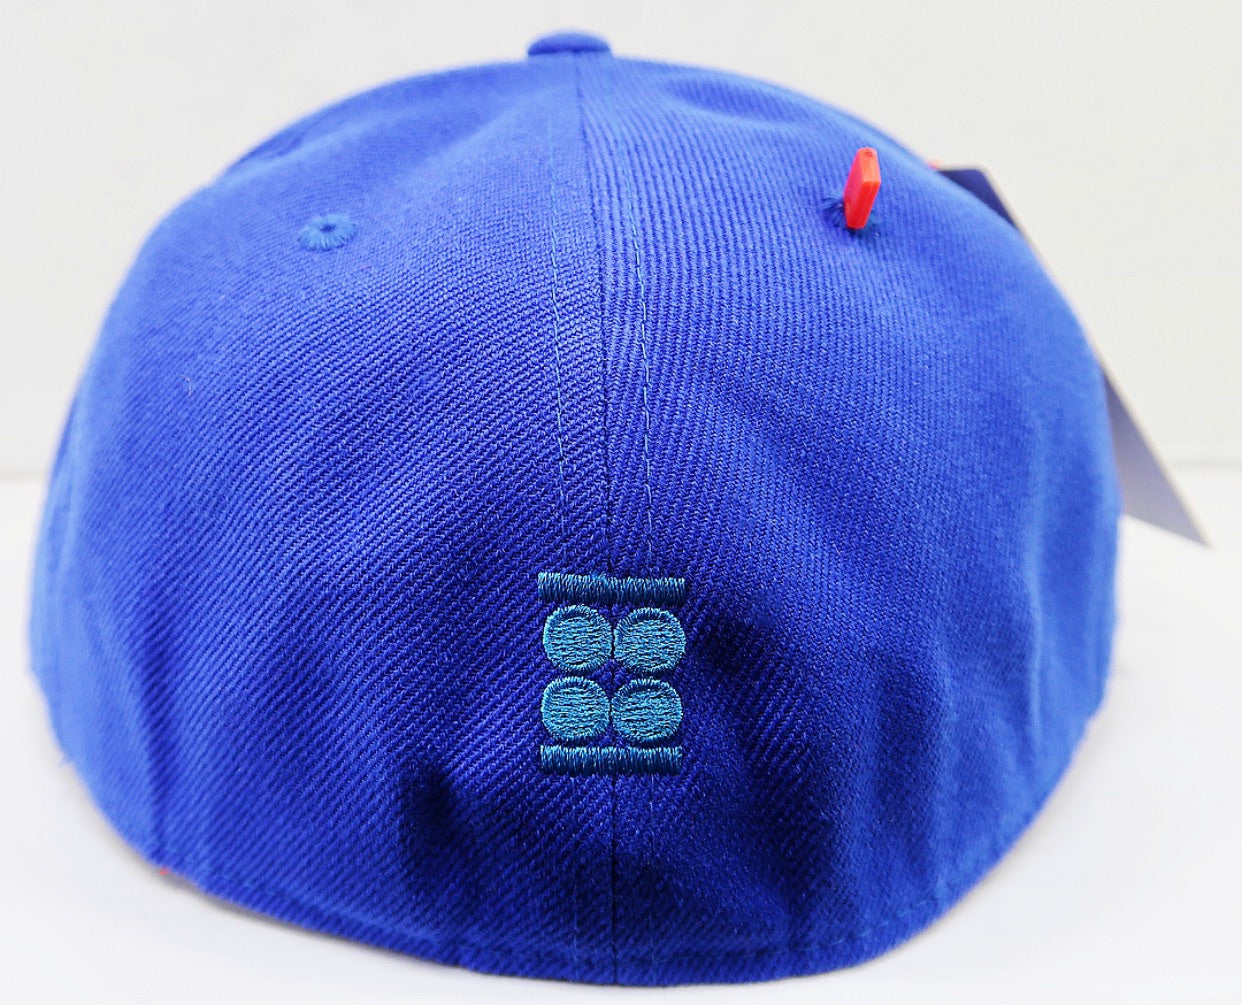 """Believe"" Graphic Fitted Hat (WHITE, CHERRY RED & ICE BLUE )"